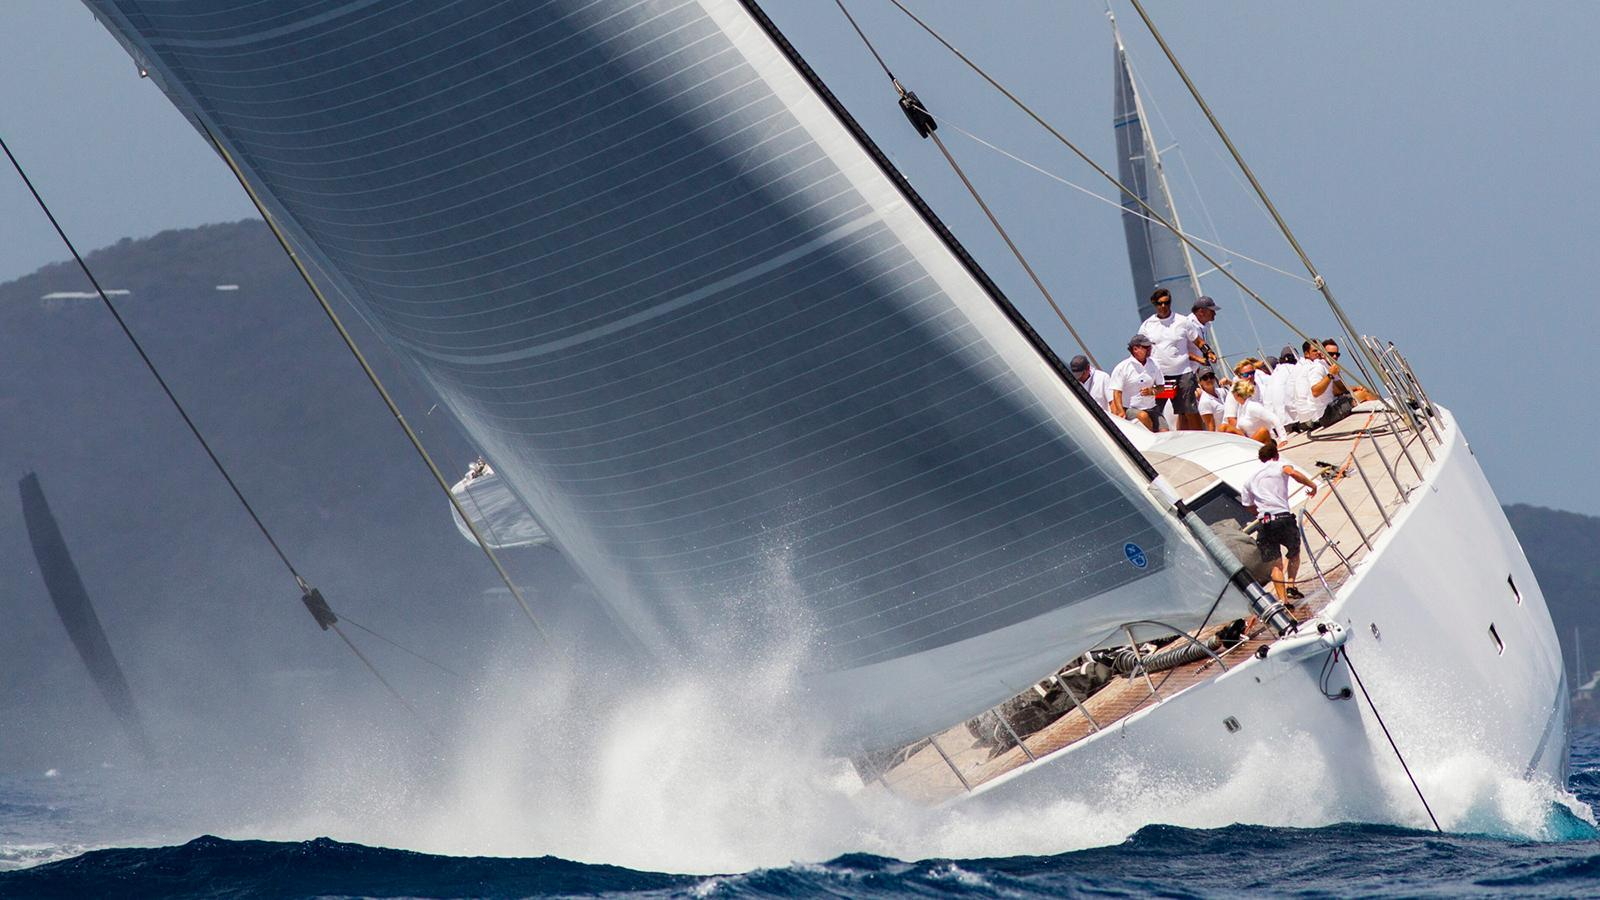 unfurled-sailing-yacht-vitters-2015-46m-running-bow